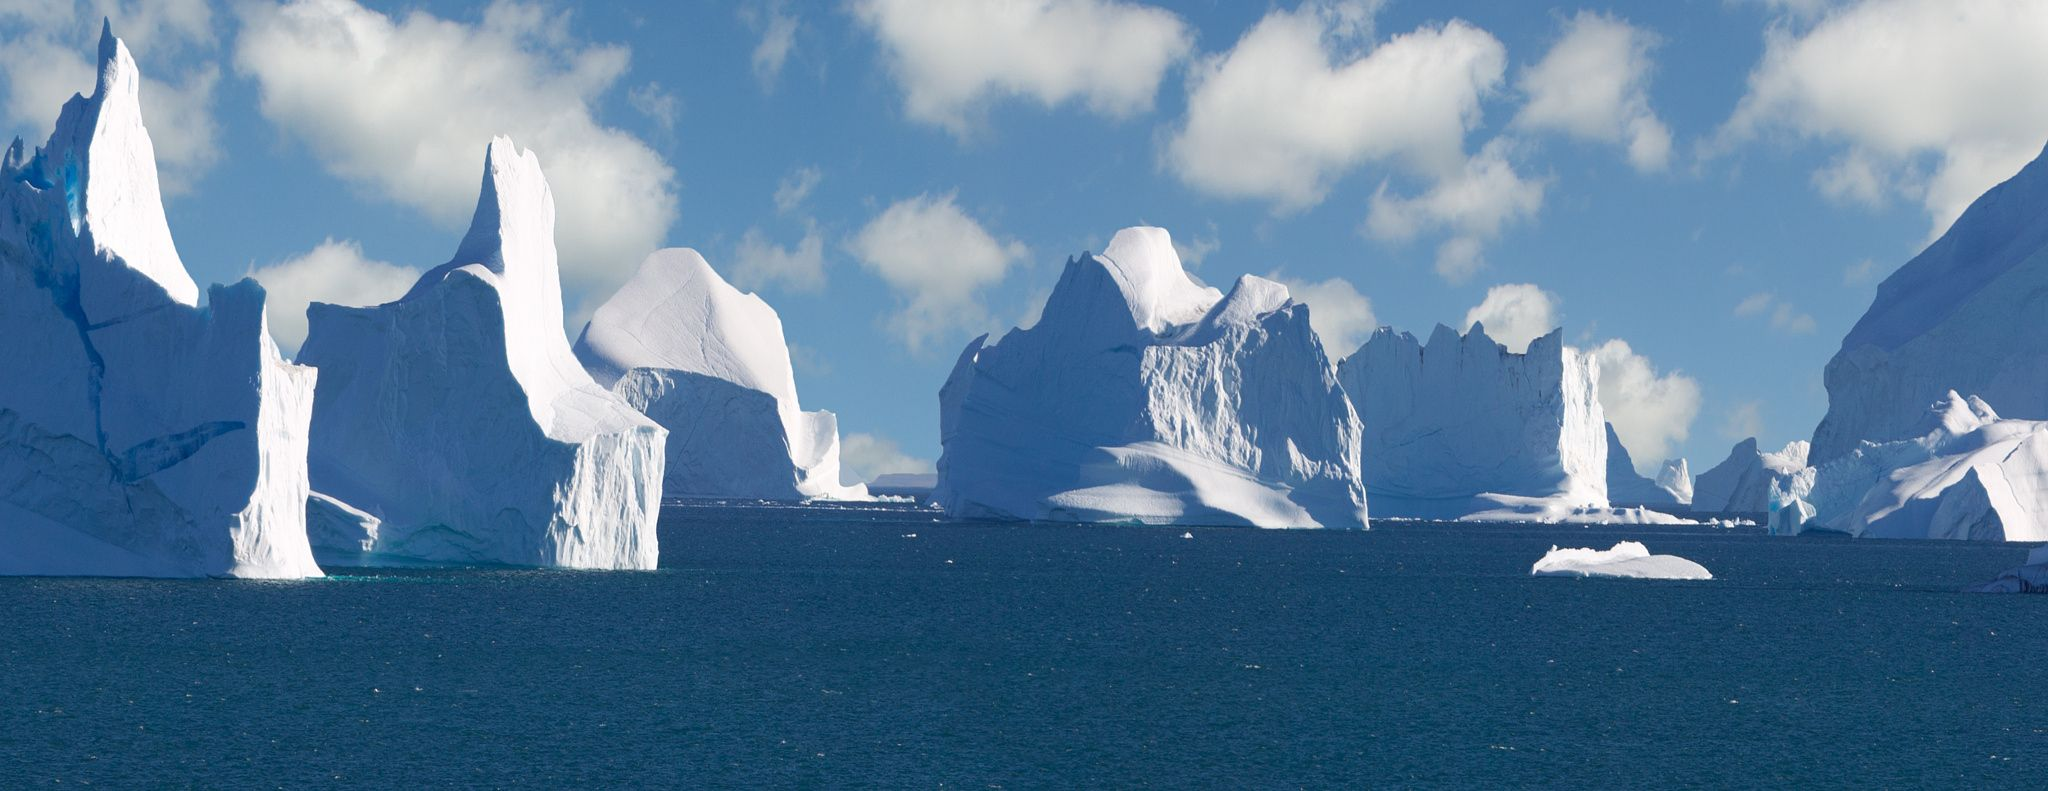 Icebergs at Scoresby Sound. - Icebergs at Scoresby Sound.